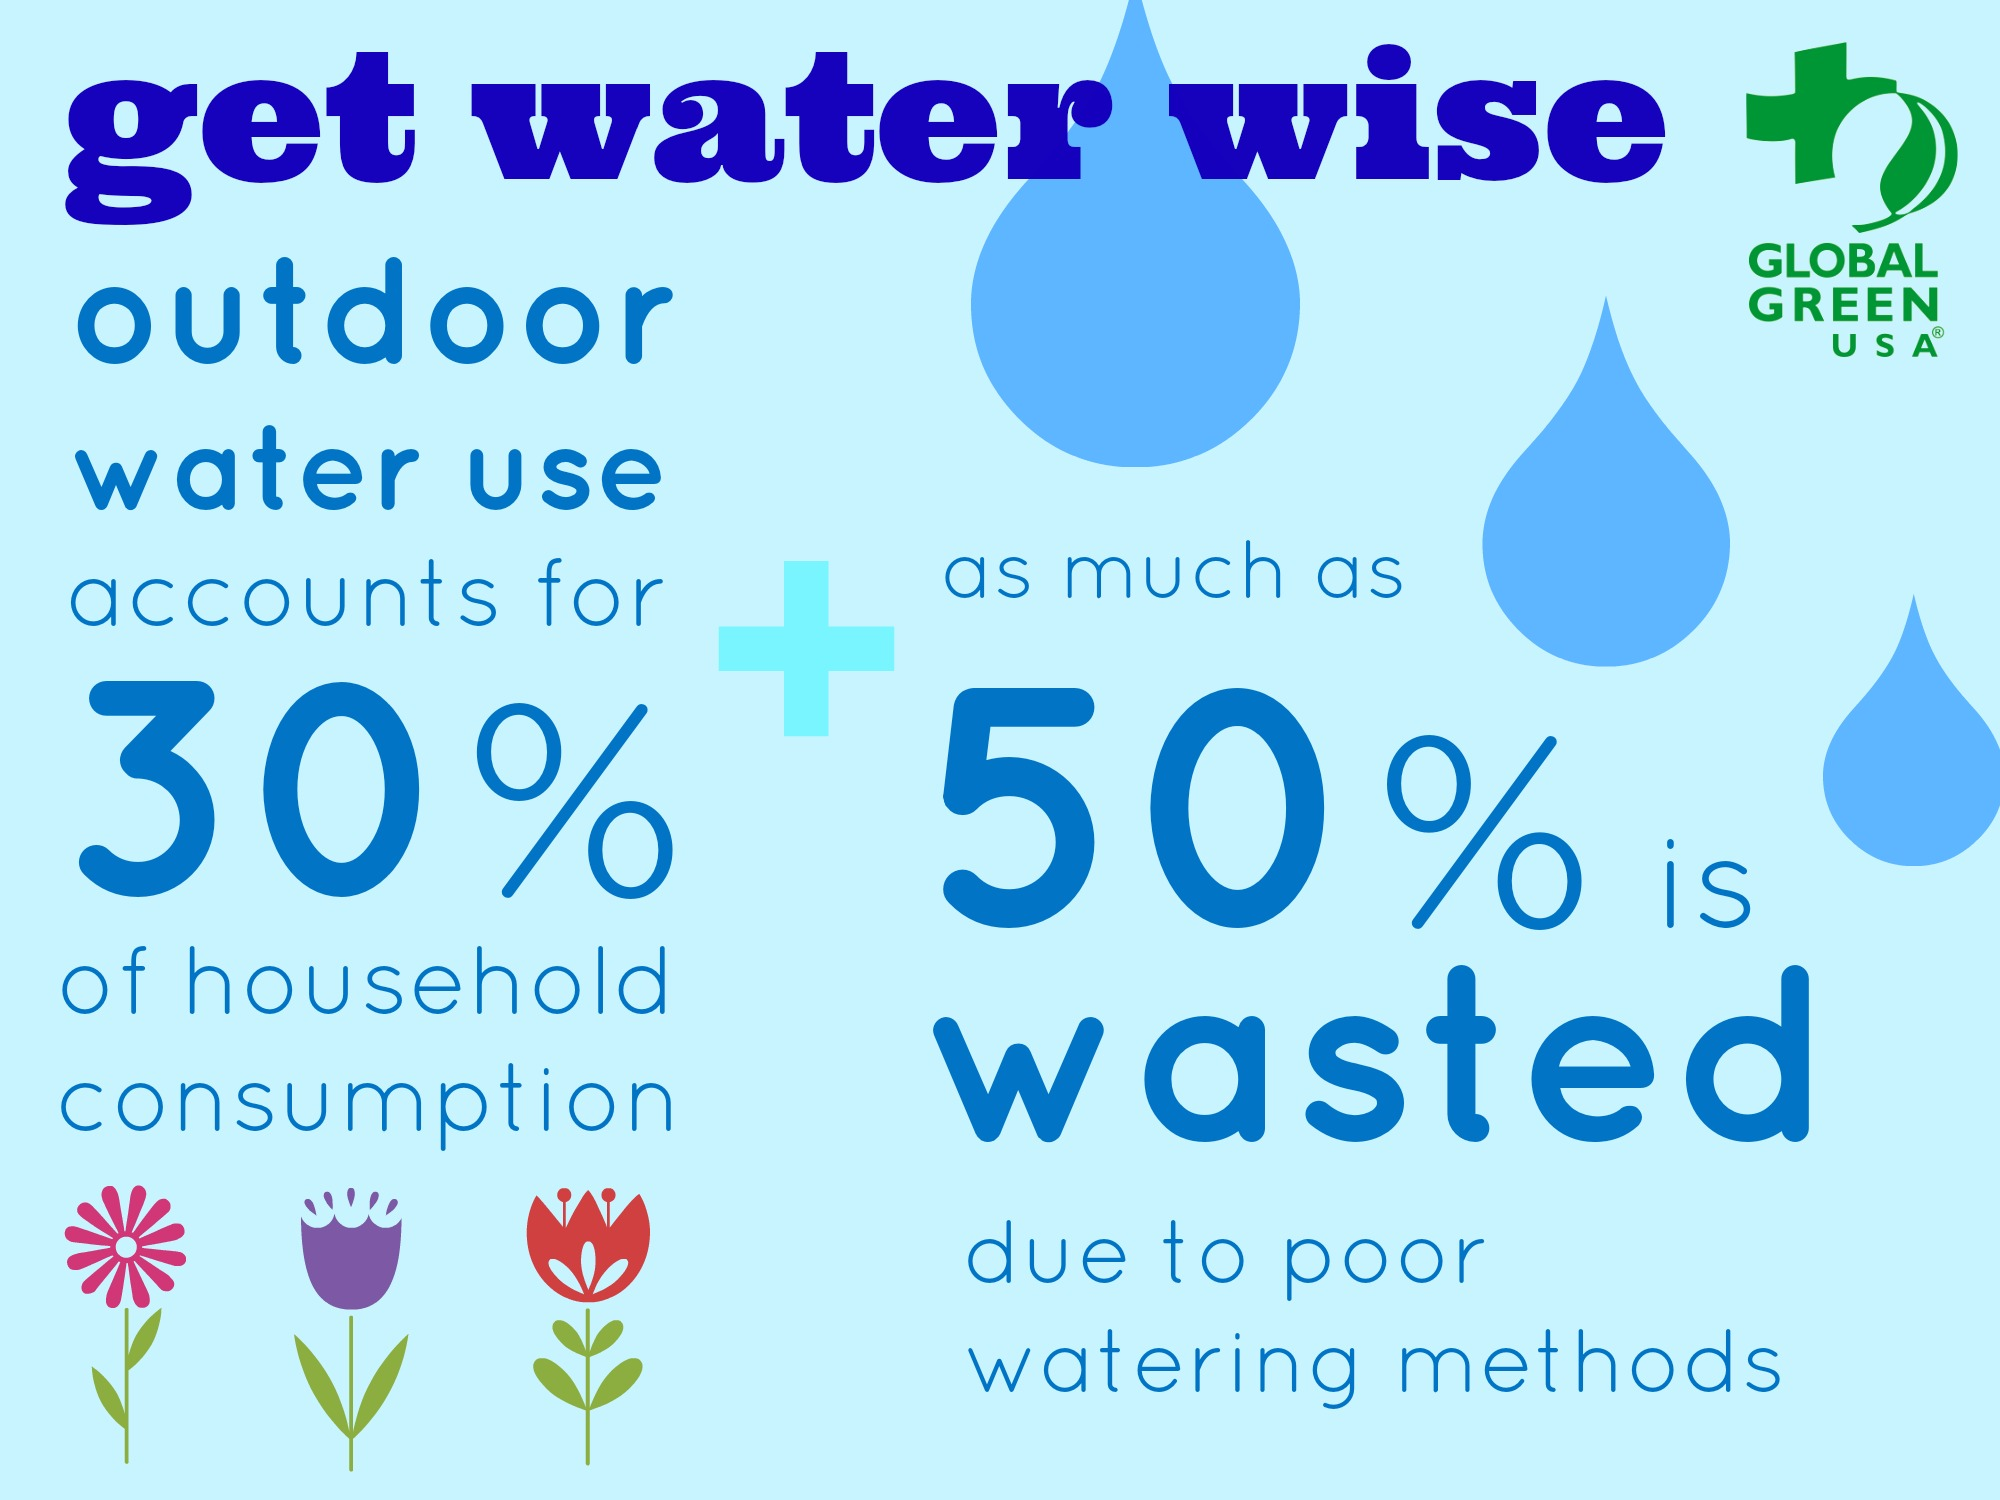 Global Green Water wise